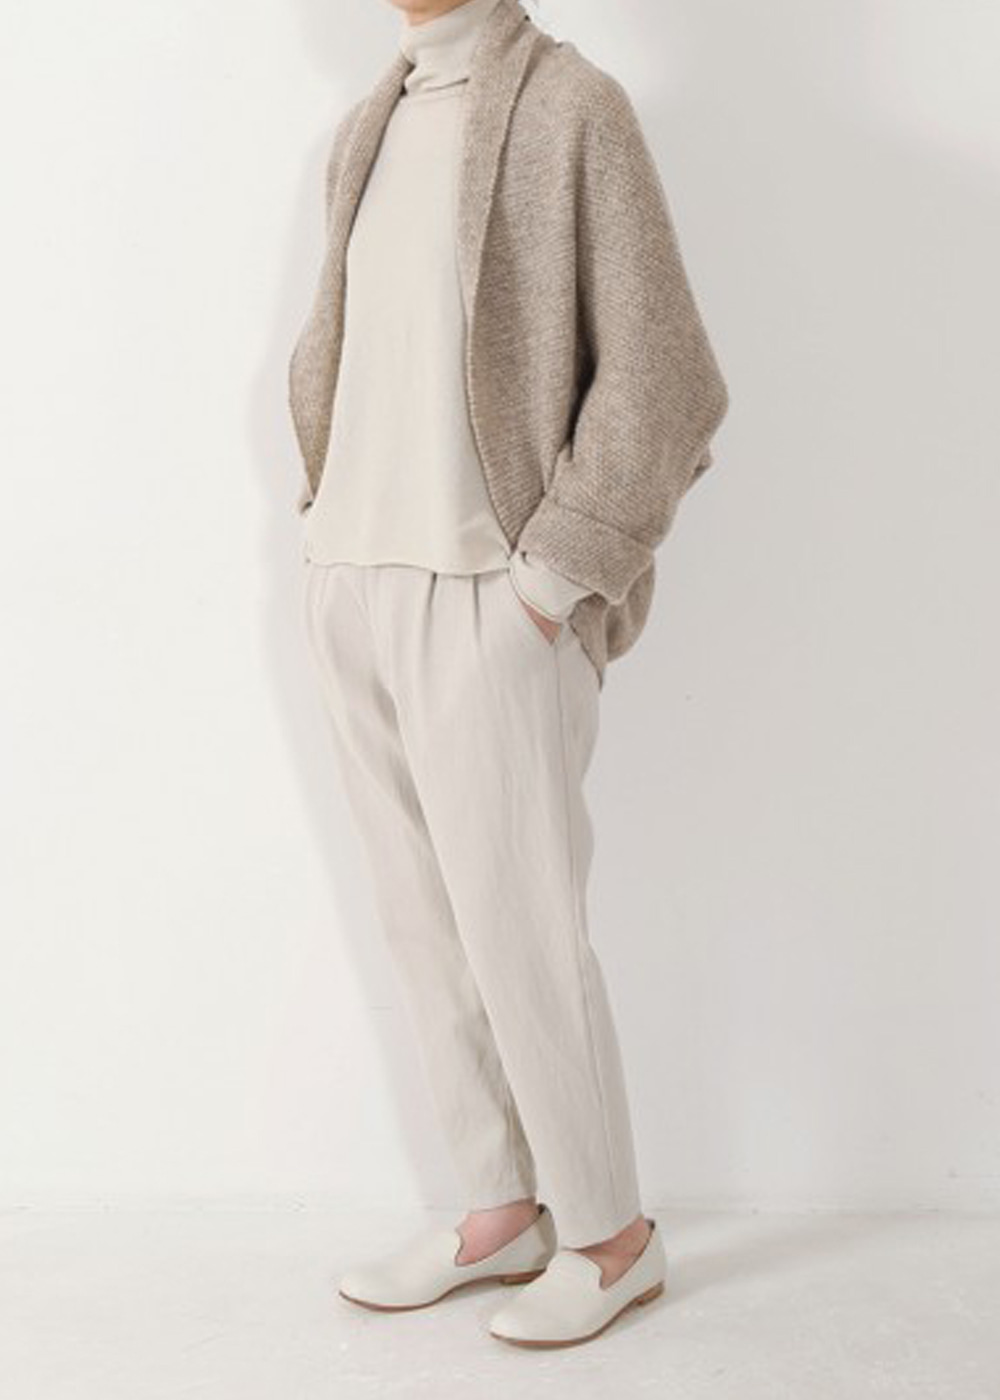 KNIT WOOL CASHMERE BORELO